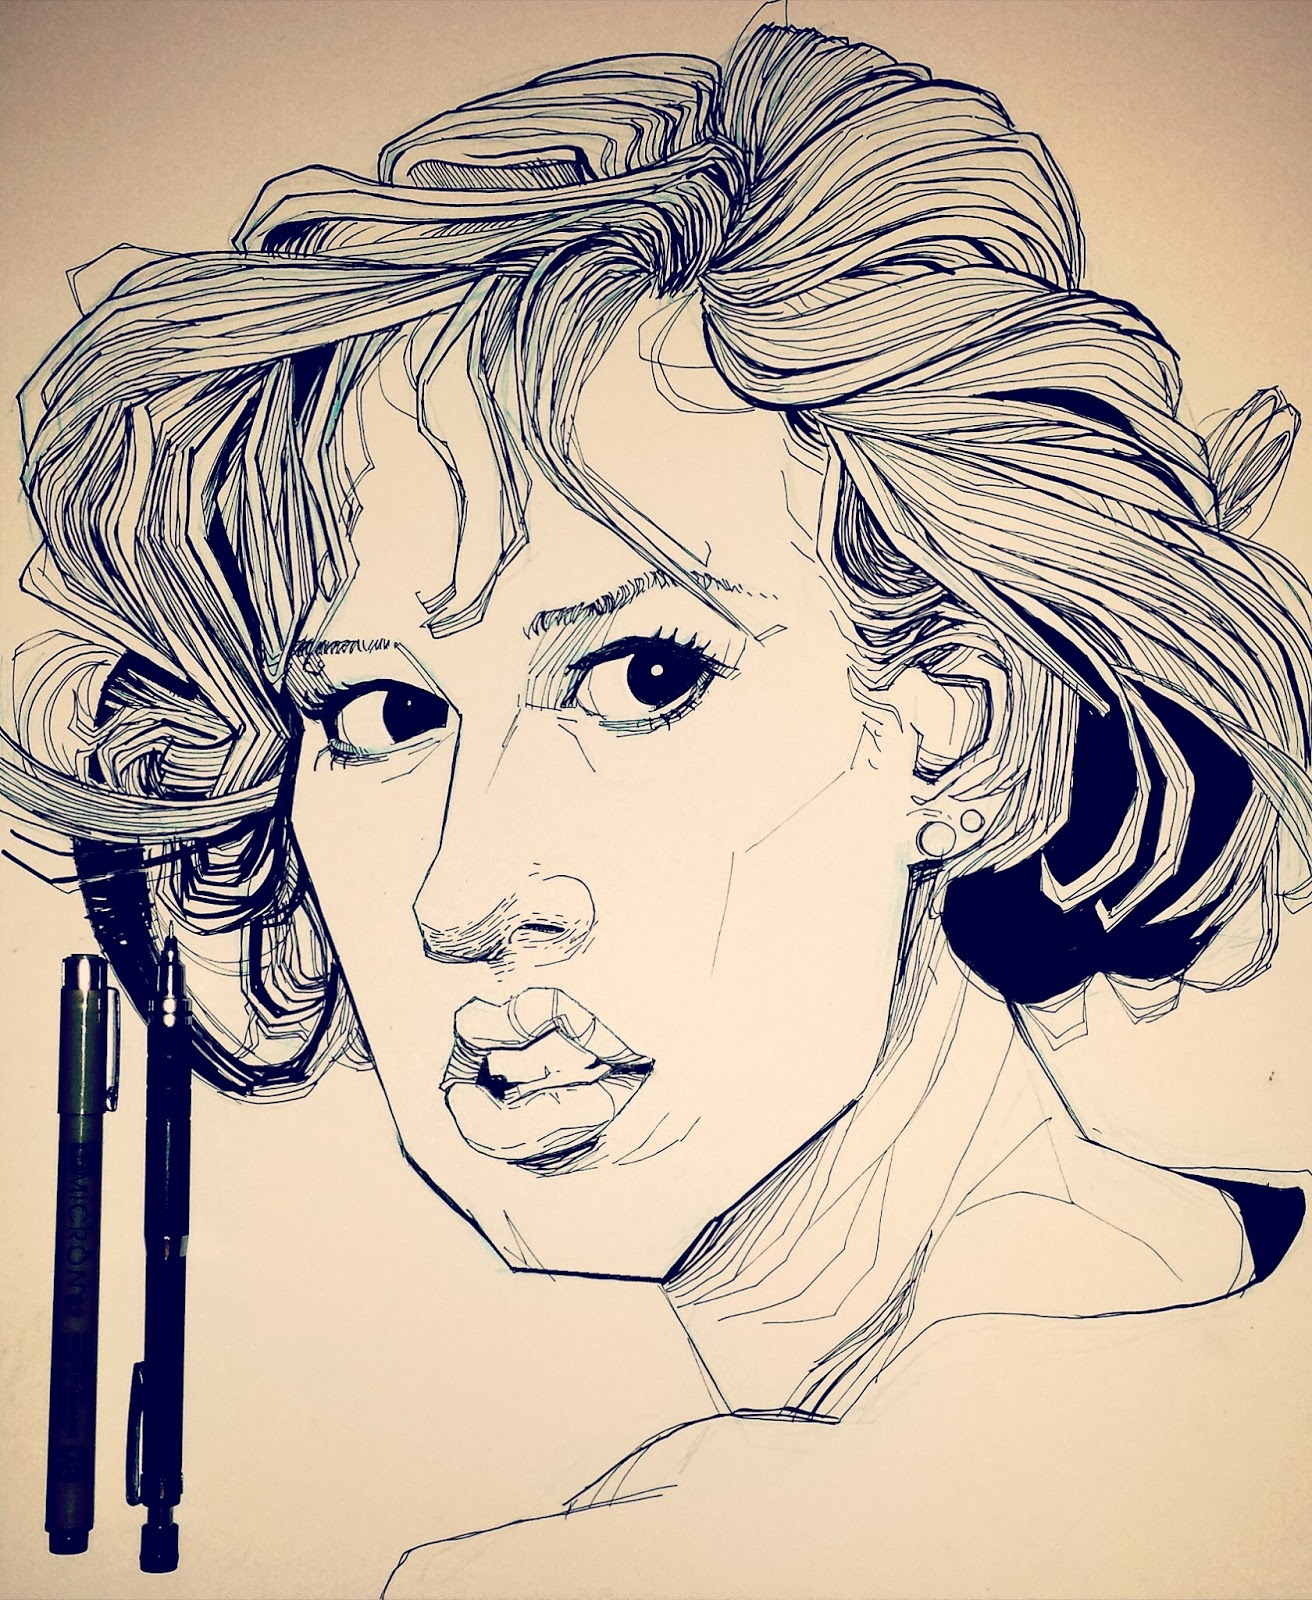 Breakfast Club Molly Ringwald drawing